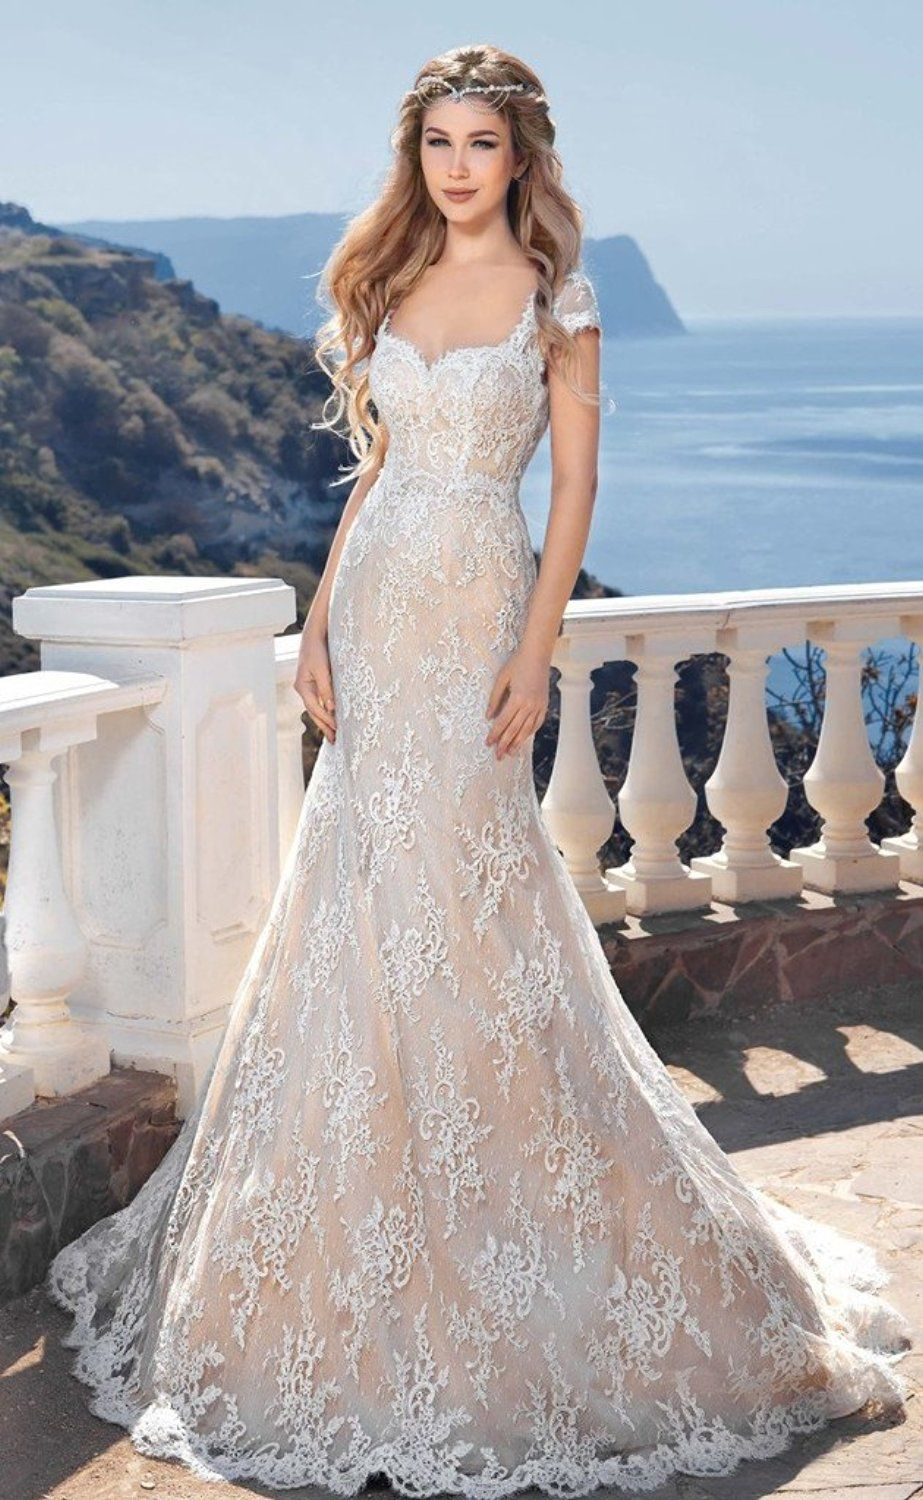 Backless beach wedding gown lace mermaid bride dress hourglass